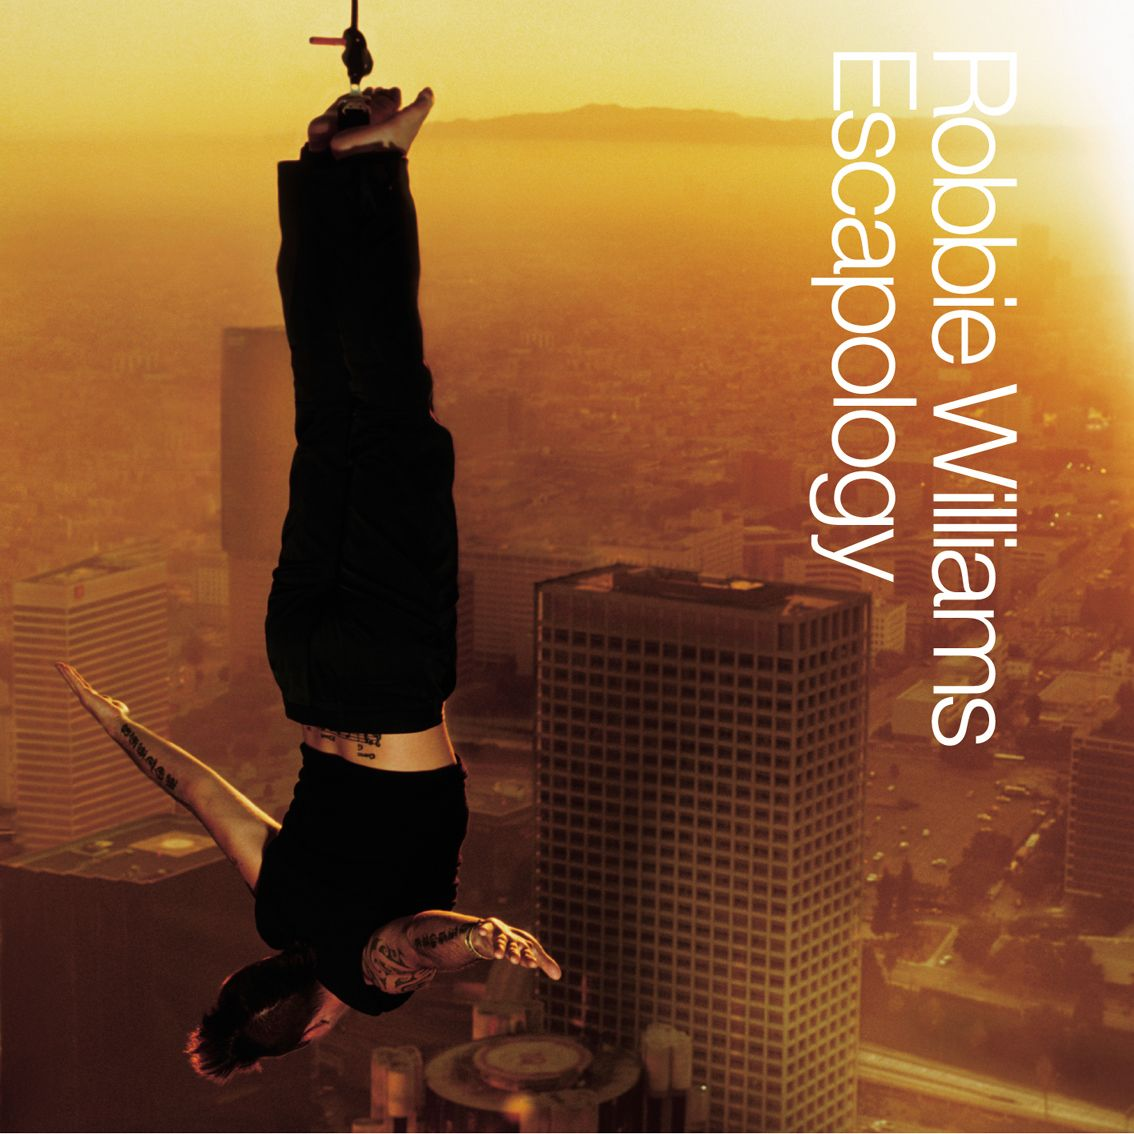 Robbie Williams, Escapology